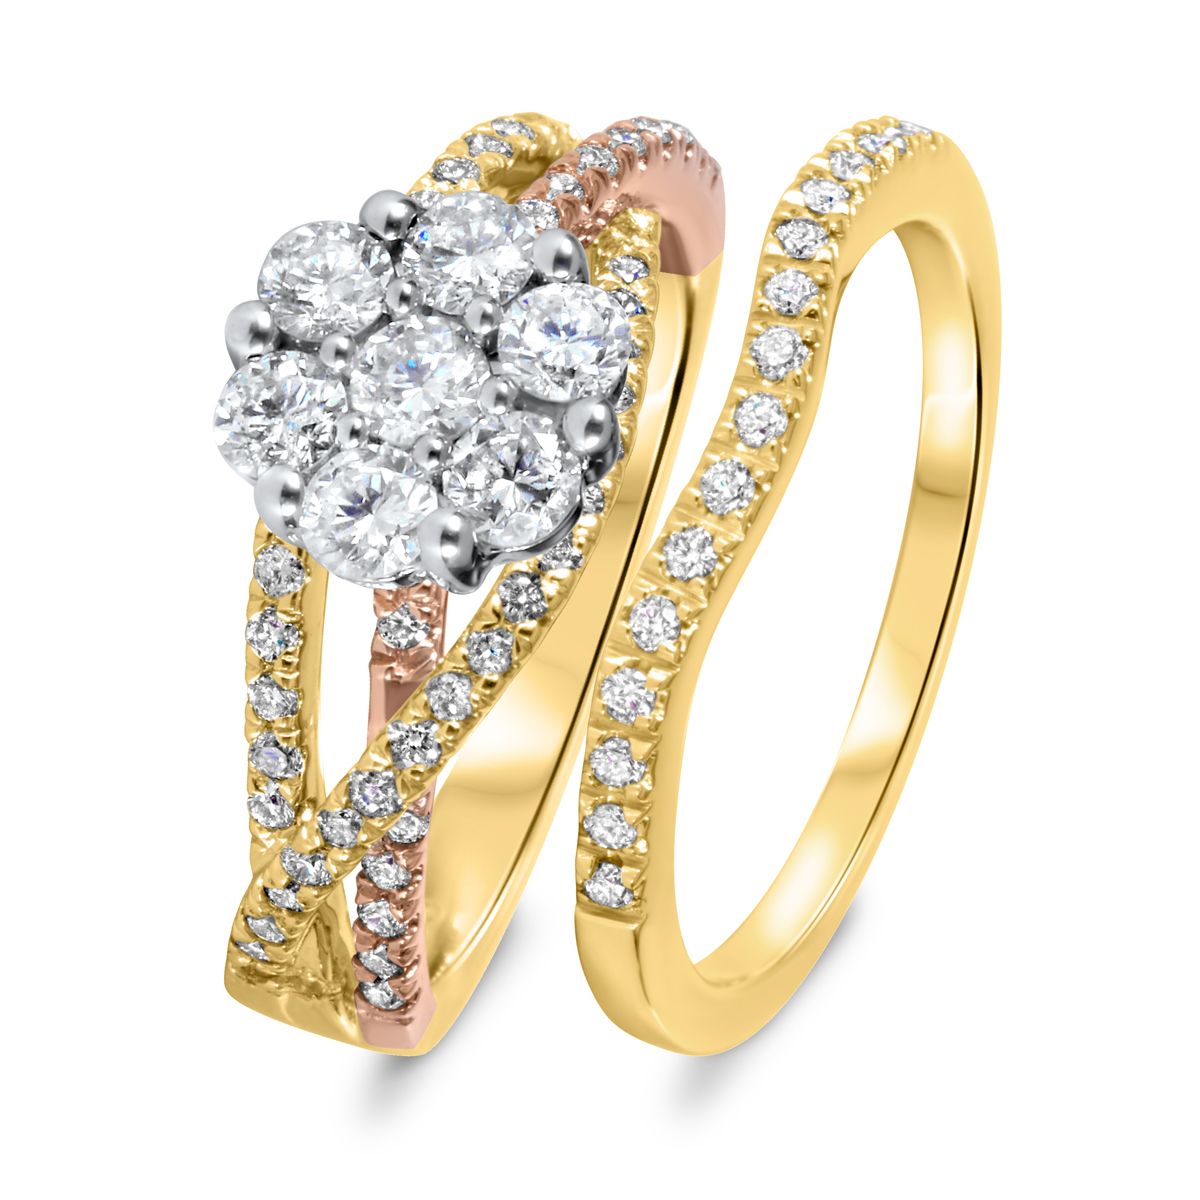 1 CT T W Diamond Women s Bridal Wedding Ring Set 10K Yellow Gold